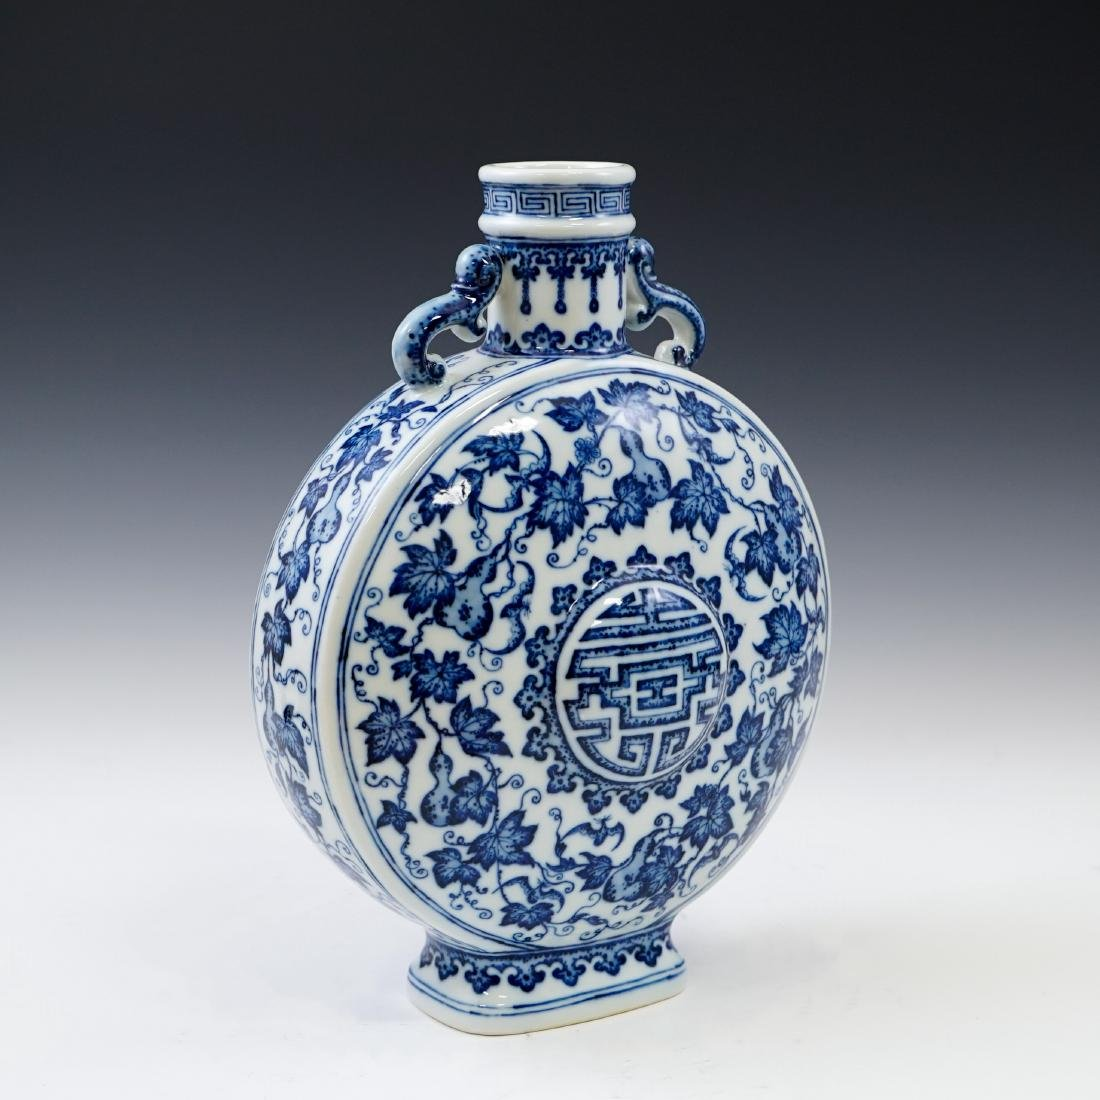 VERY FINE QIANLONG BLUE AND WHITE PORCELAIN MOON FLASK - 6